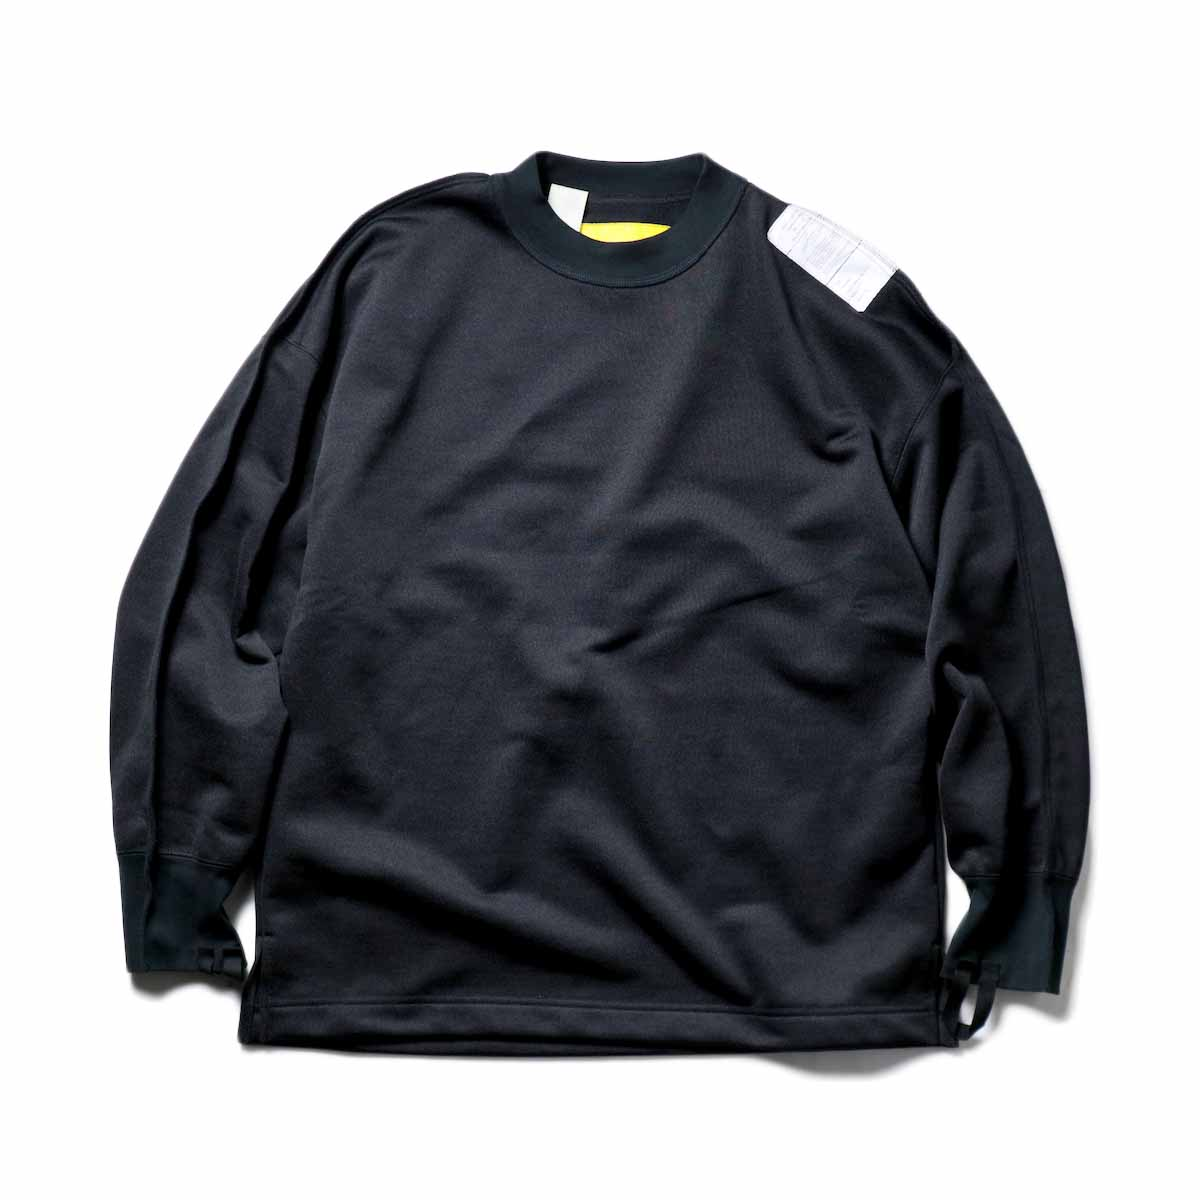 N.HOOLYWOOD / 9211-CS08-024pieces Crew Neck Sweat Shirt (Black)